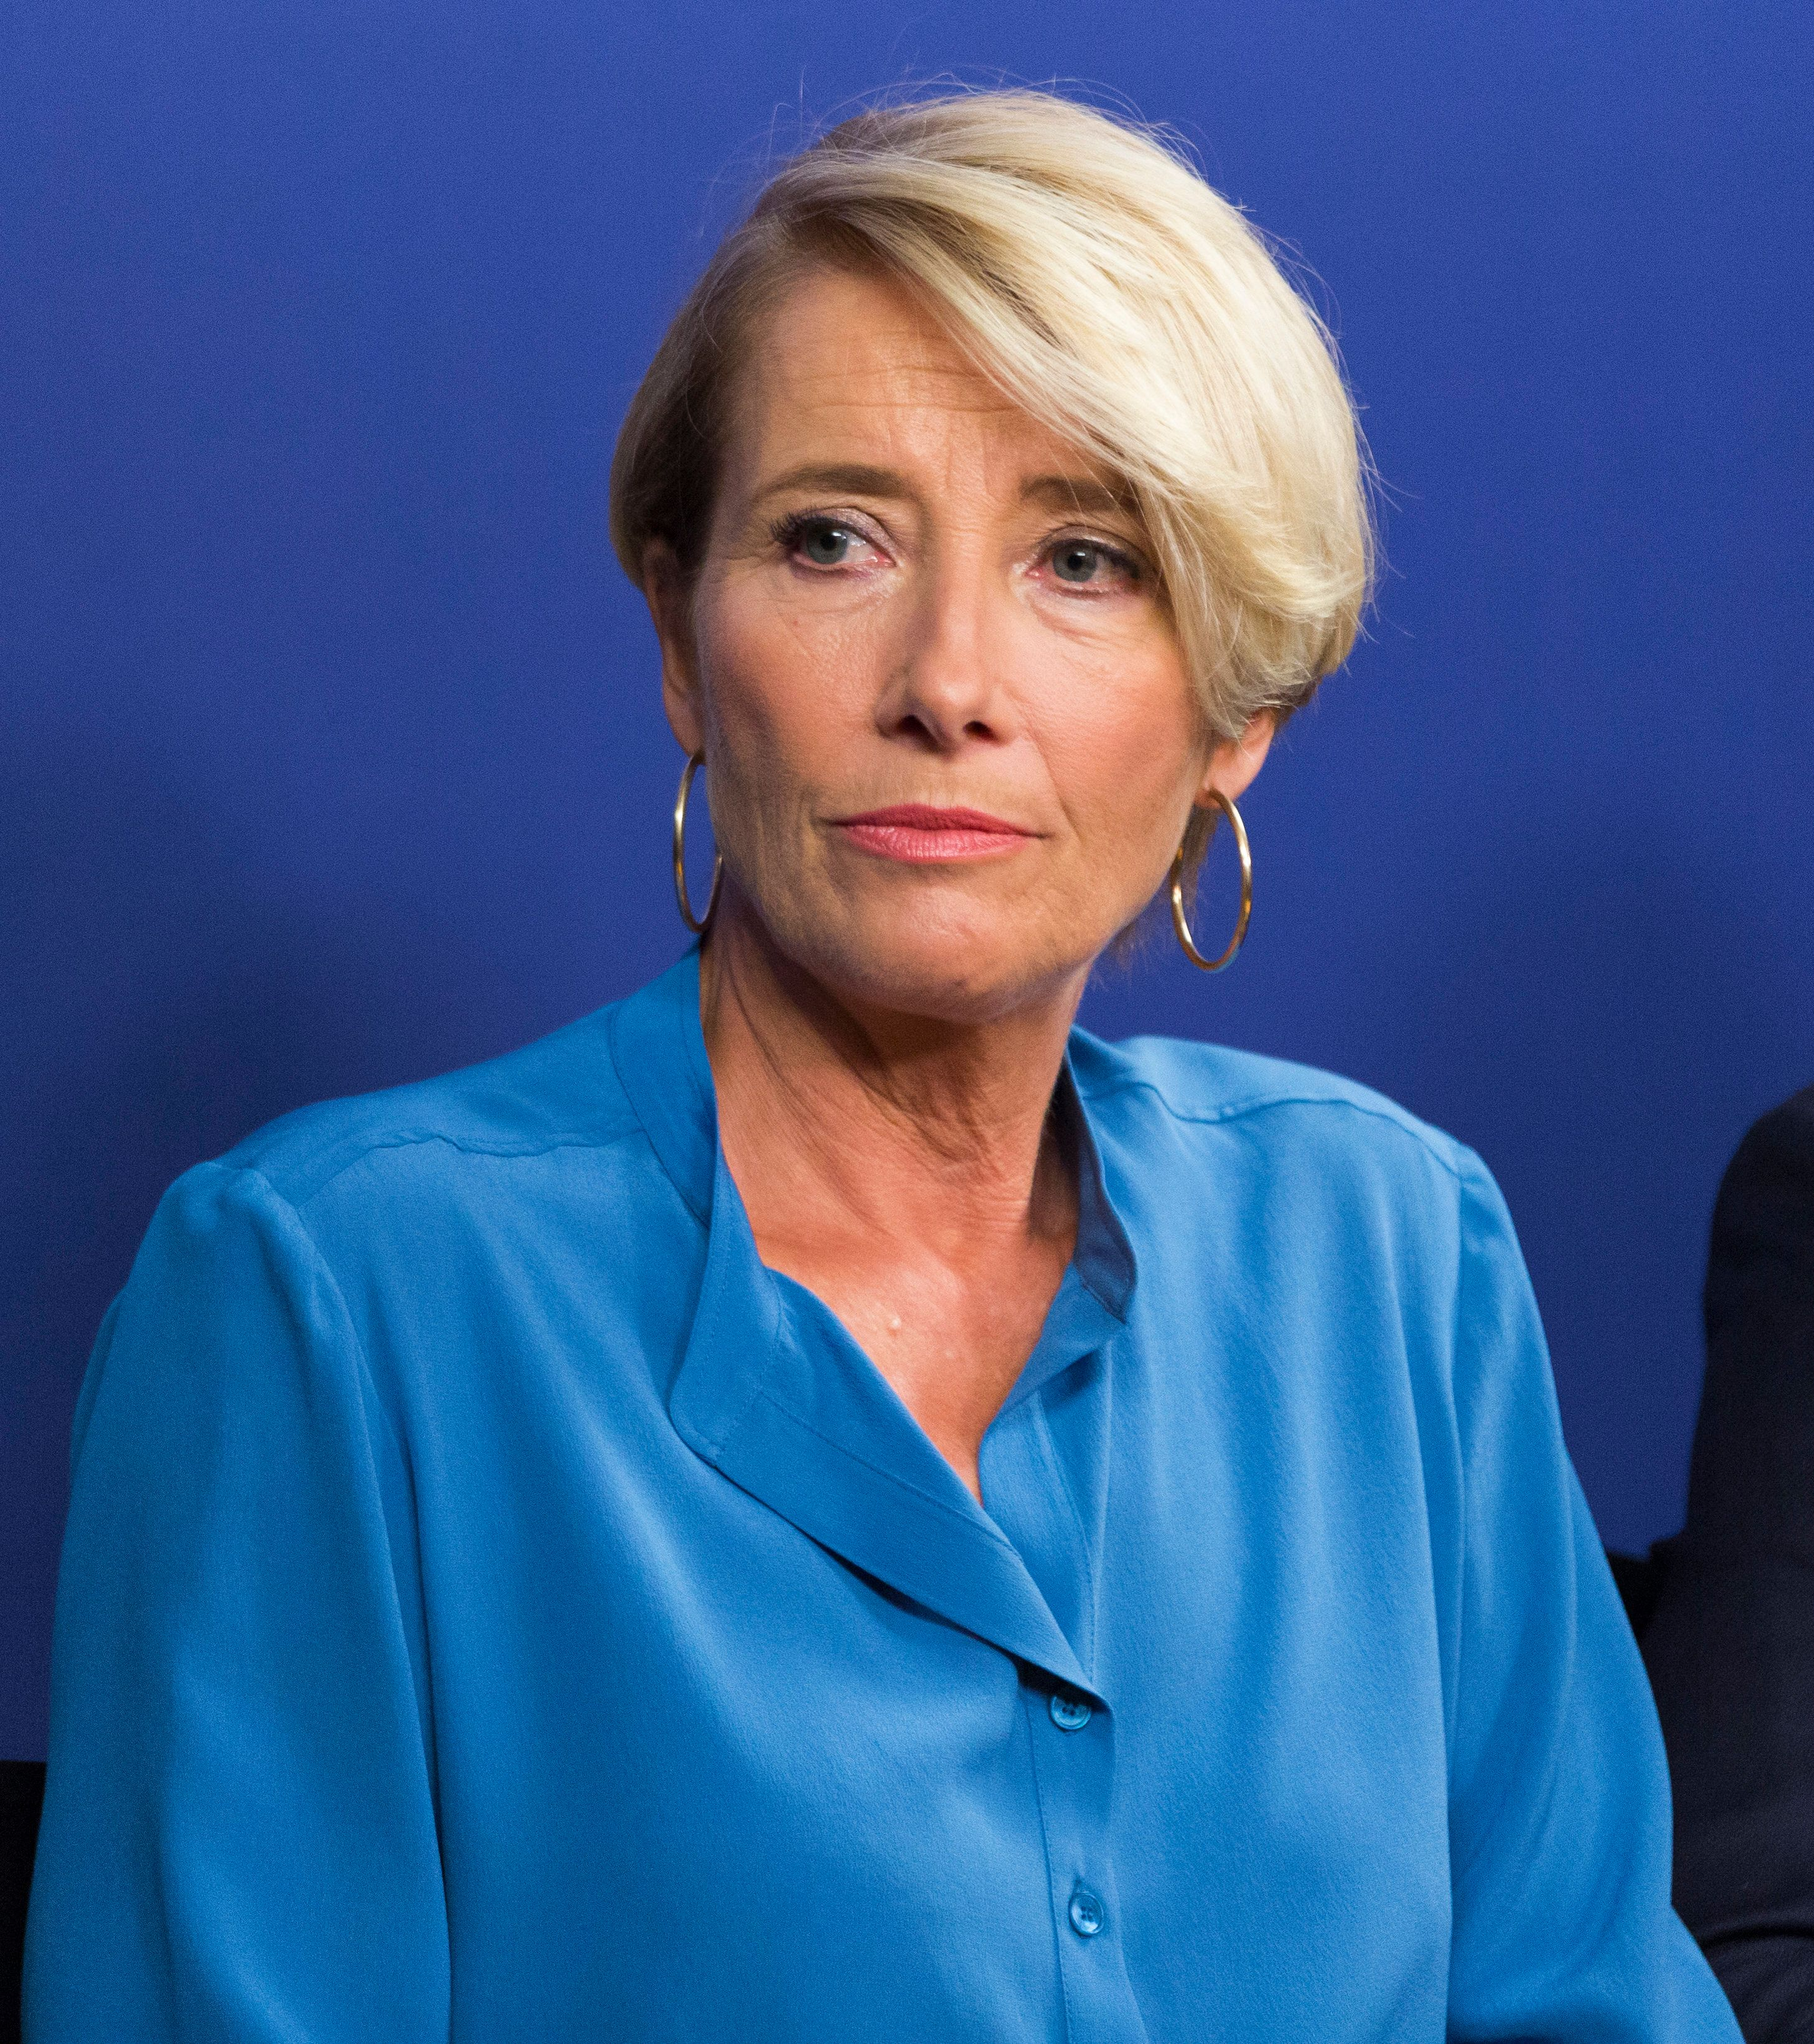 Emma Thompson Says Real-Life Heartbreak Inspired 'Love Actually'